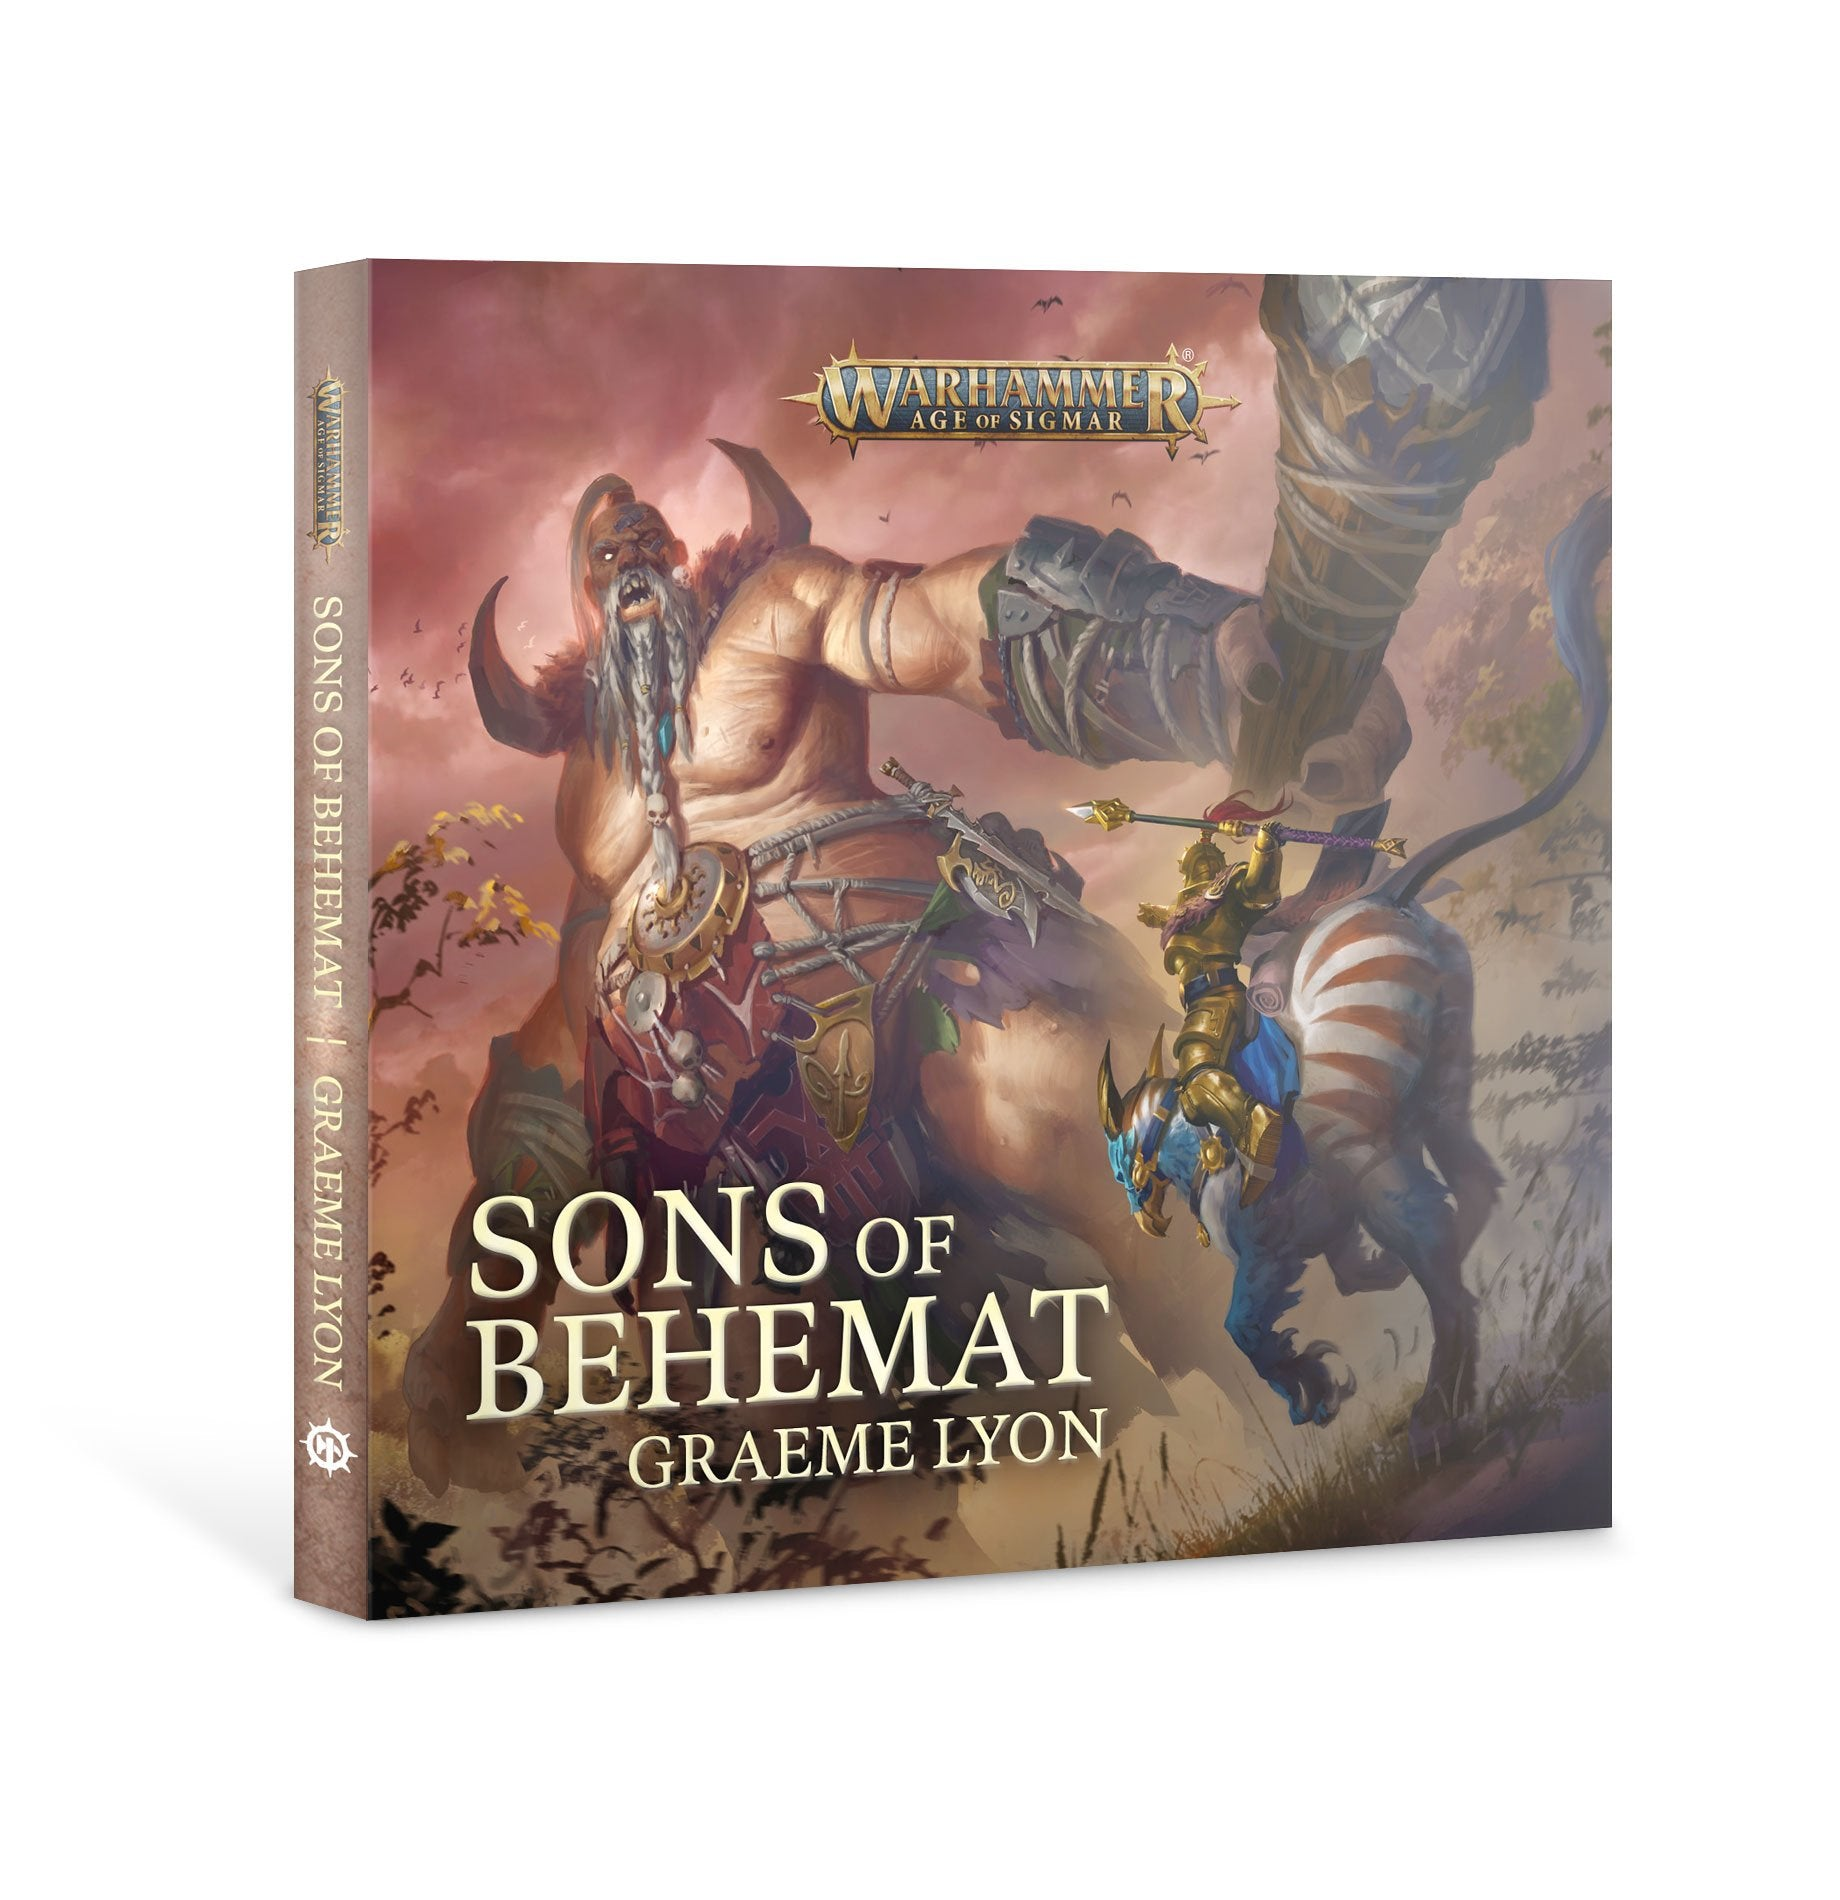 SONS OF BEHEMAT (AUDIOBOOK) | Lvl Up Gaming UK